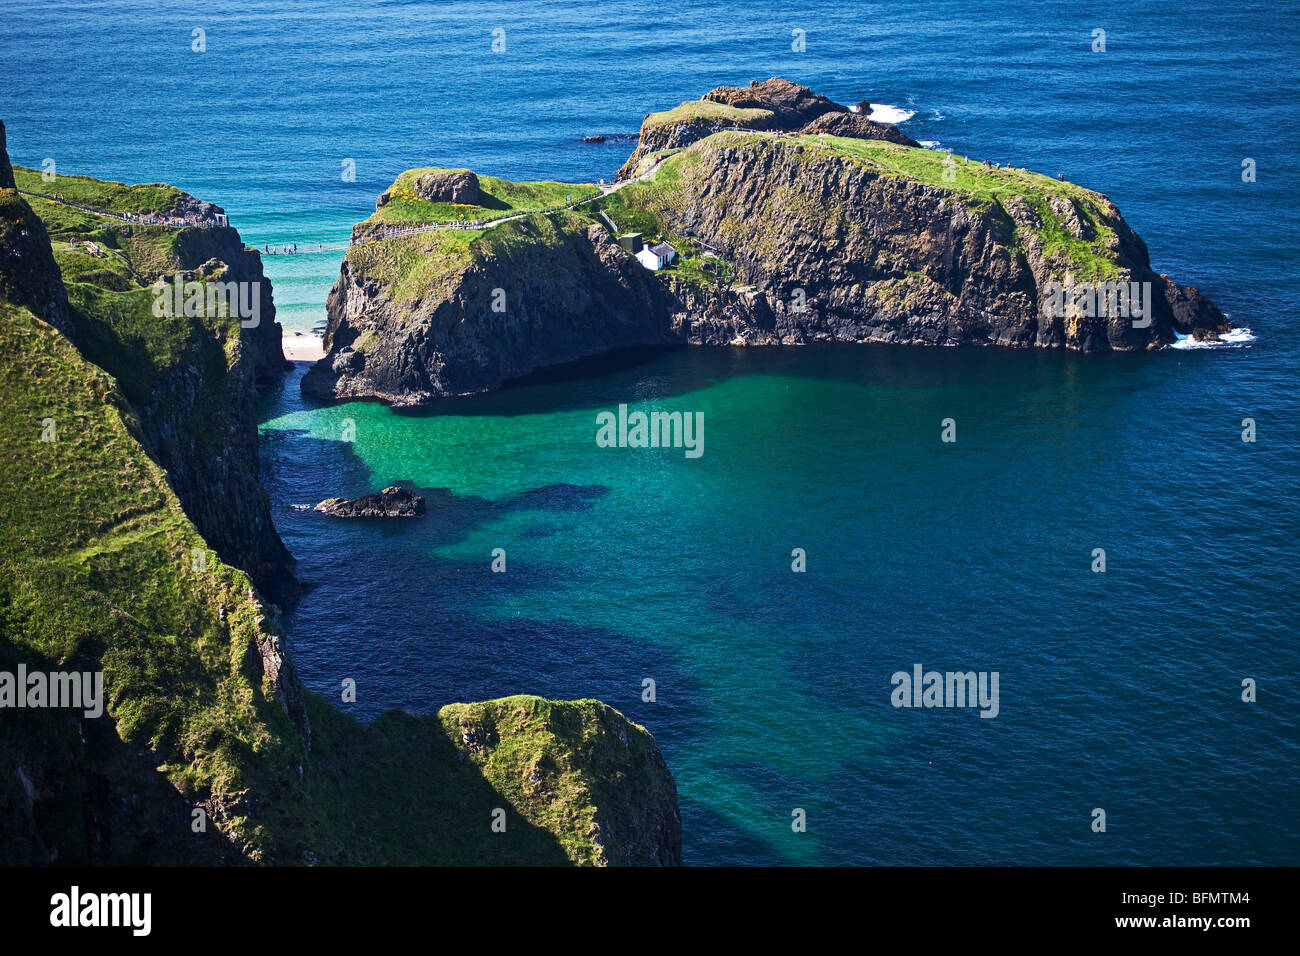 United Kingdom, Northern Ireland, Antrim, Ballycastle, Ballintoy, view of the Carrick a Rede Rope Bridge. - Stock Image